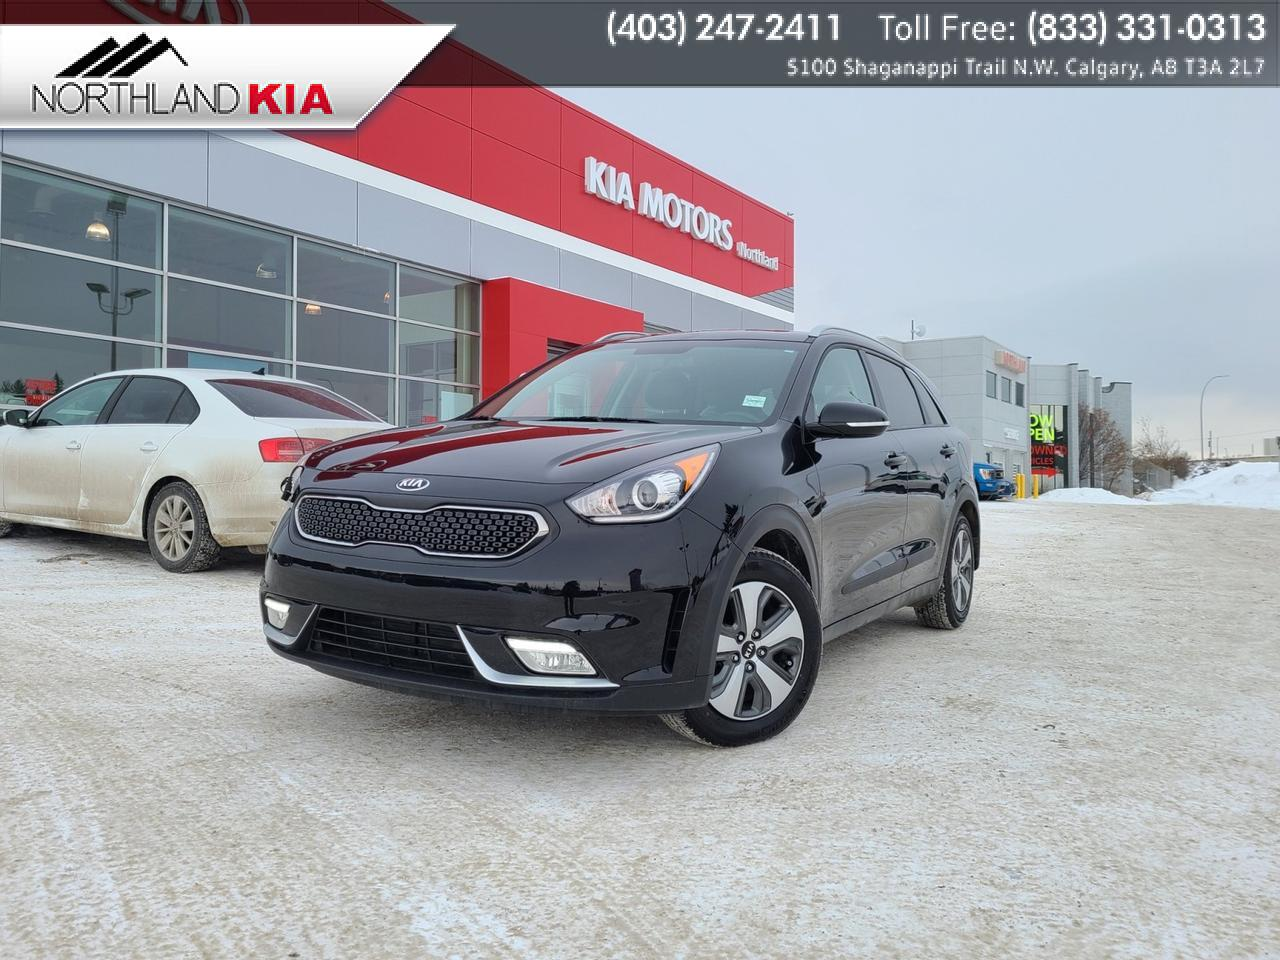 2018 Kia Niro EX Premium HEATED SEATS/ STEERING WHEEL, ANDRIOD AUTO, APPLE CARPLAY, BACKUP CAM, SUNROOF Calgary AB